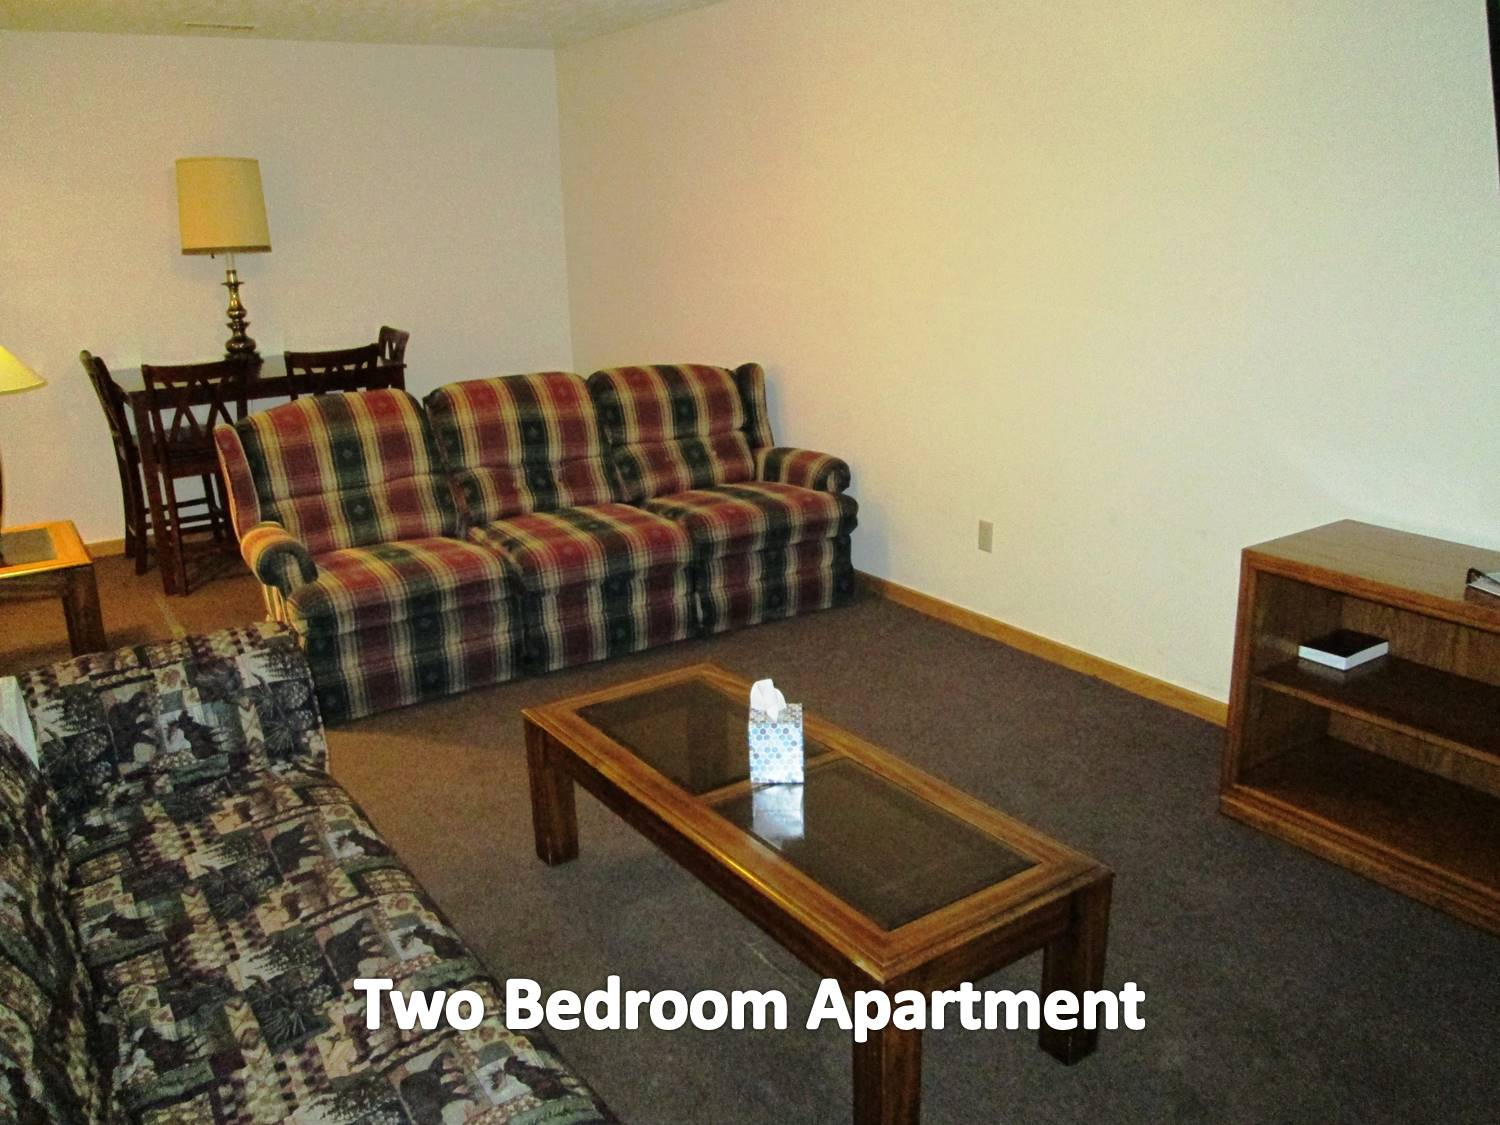 2 bedroom apartment two queen beds, kitchen. lving room with pullout sofa. .